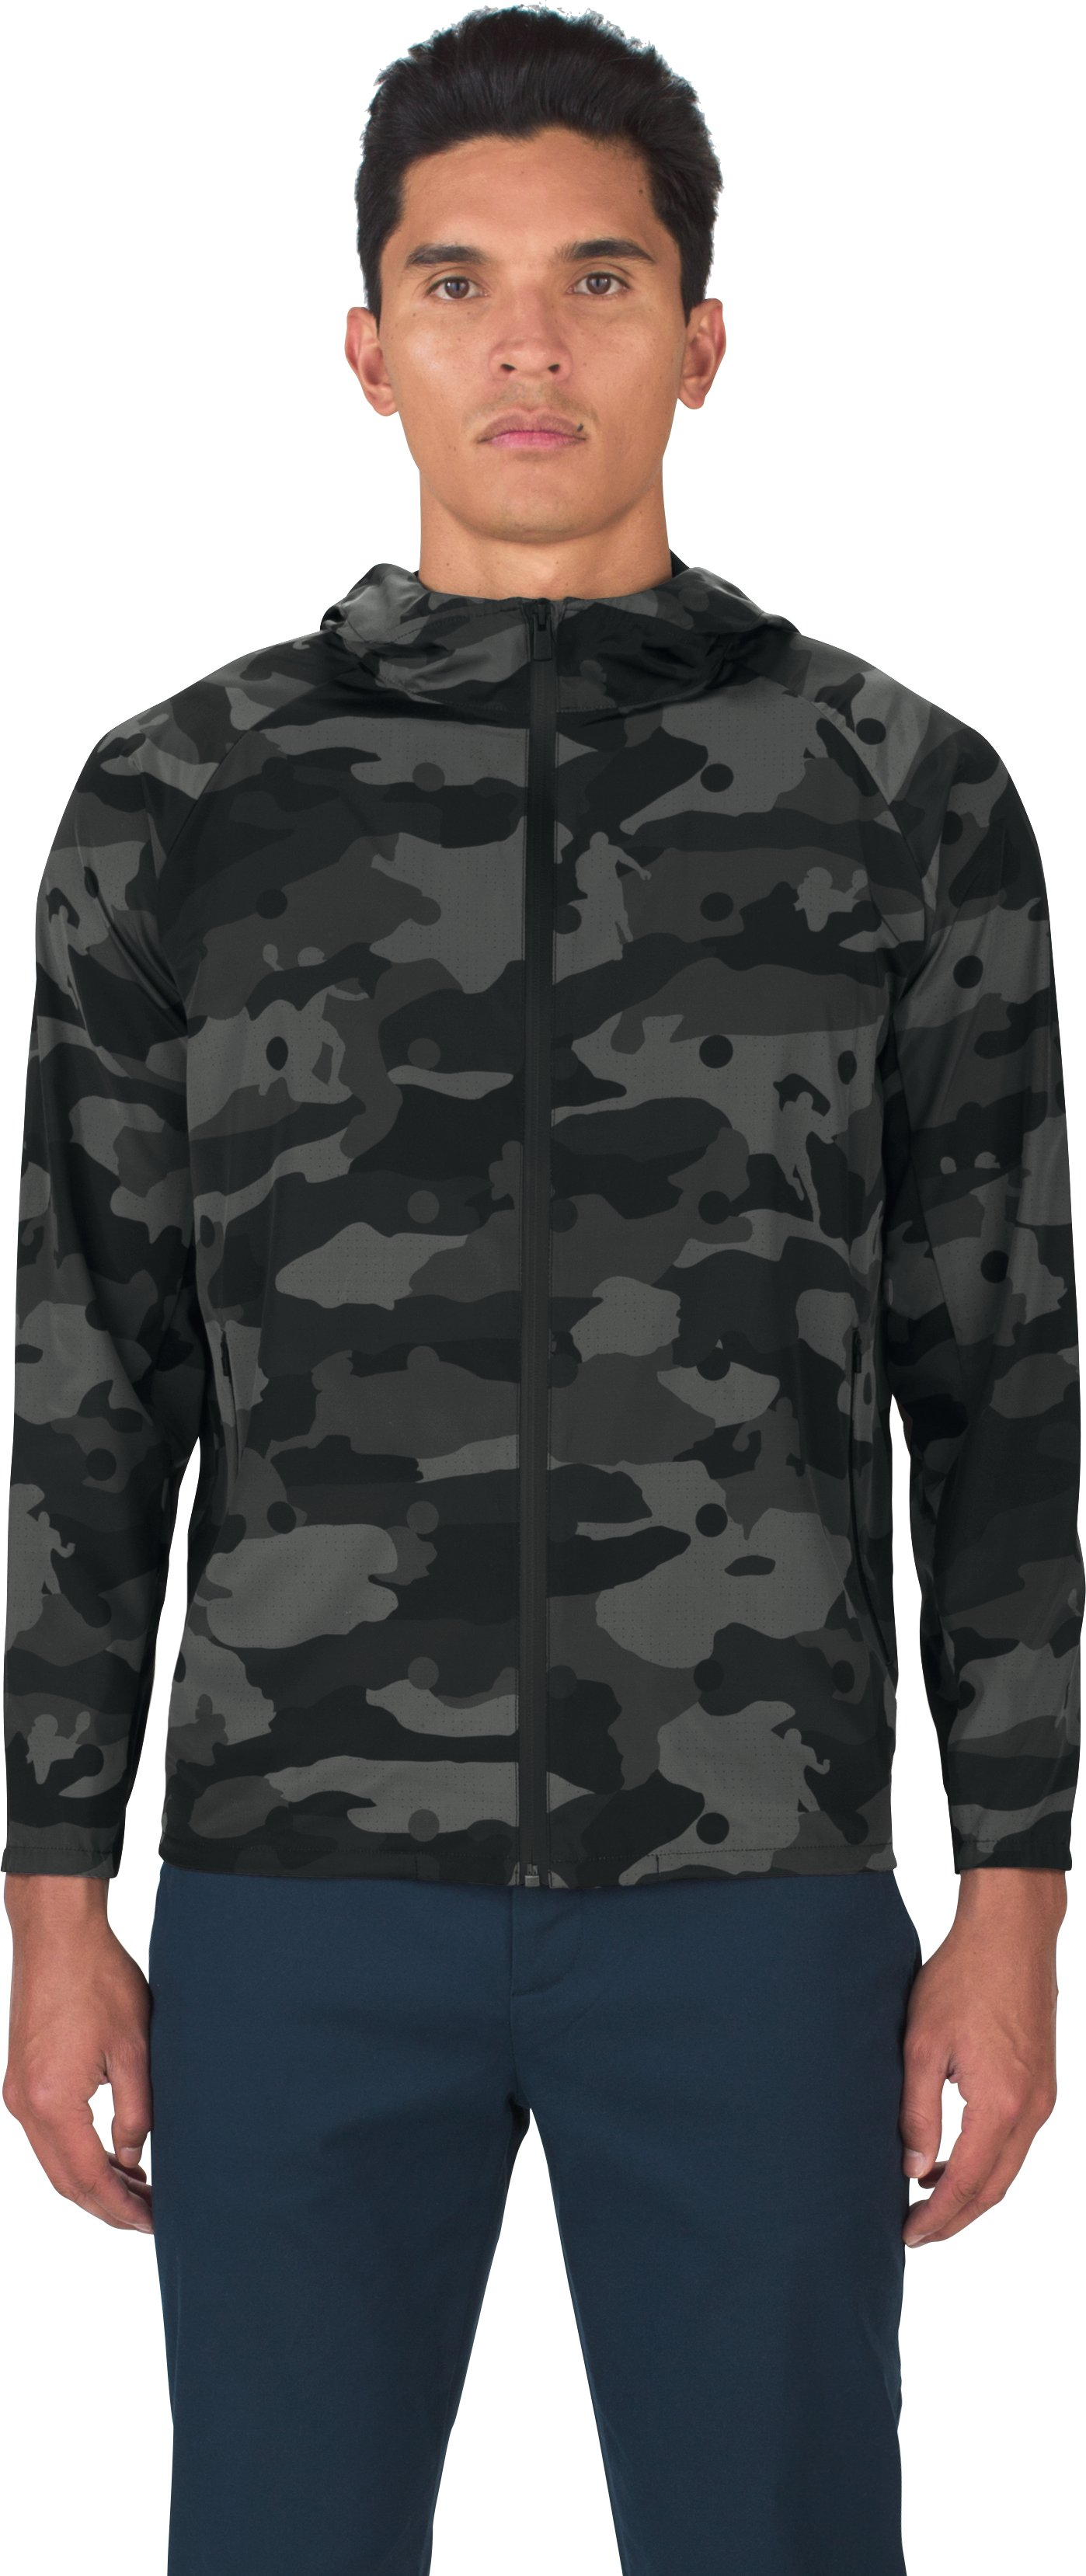 Men's UAS Meters Camo Track Jacket, Black